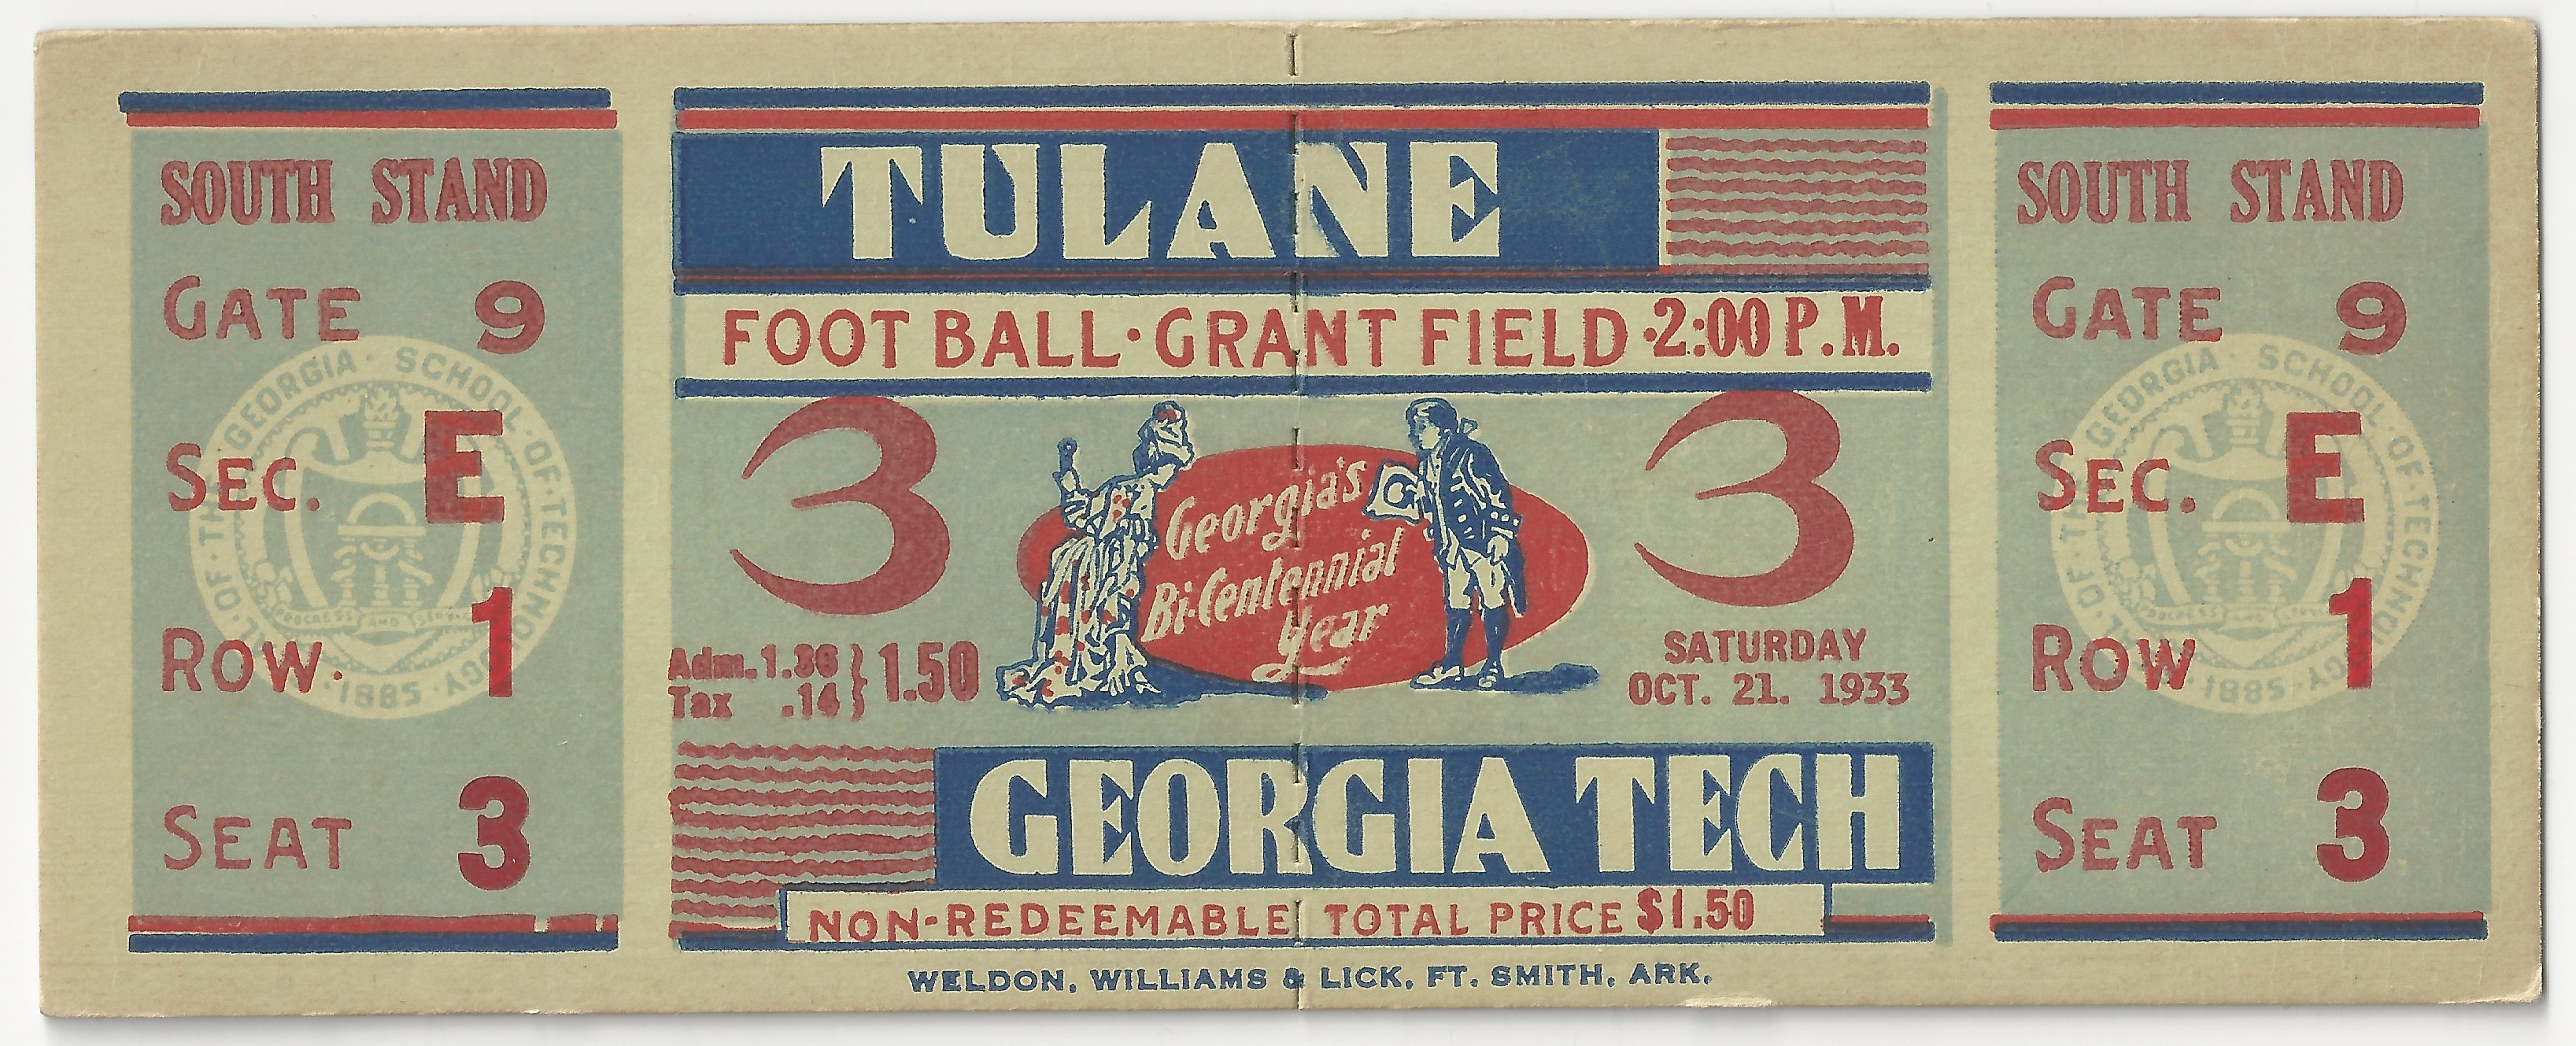 Georgia Tech vs. Tulane - 1933